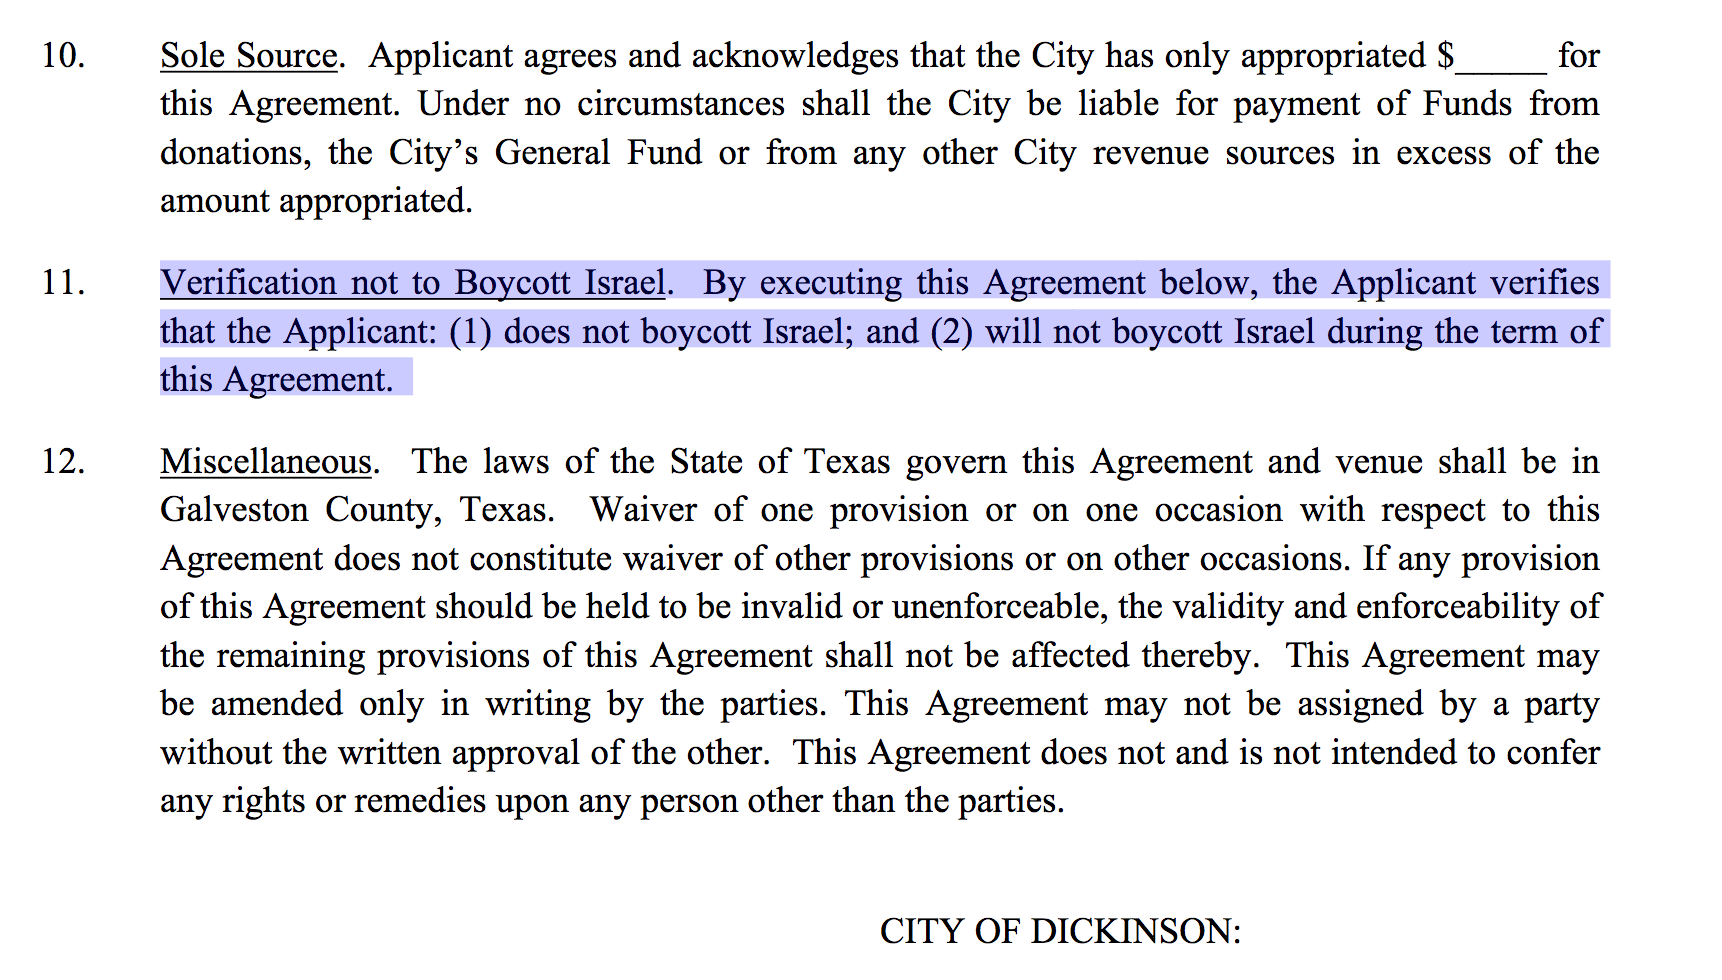 Texas city refuses providing hurricane aid to those who boycott Israel